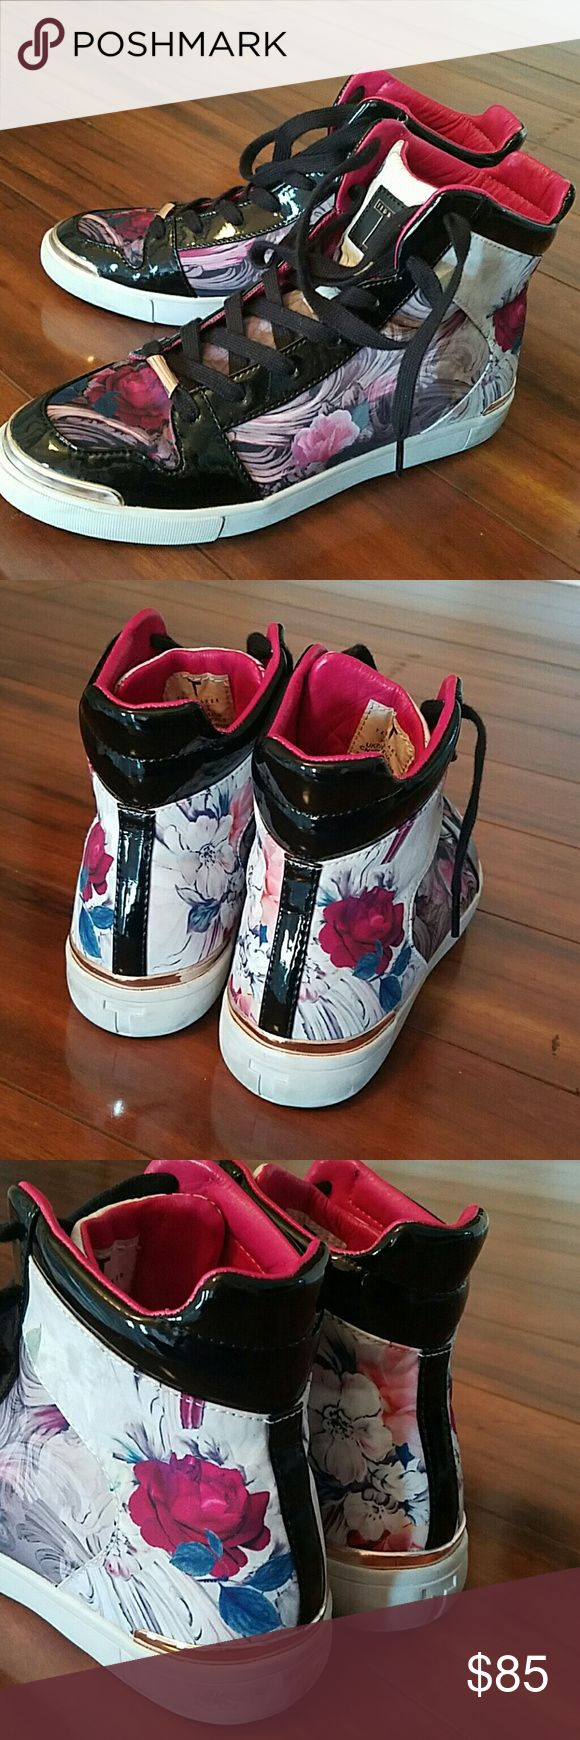 Ted Baker Stylish Sneakers Beautiful Rose Sneakers that 9 is ture to it size and also a 8 in a Half shoe size will work. Ted Baker Shoes Sneakers